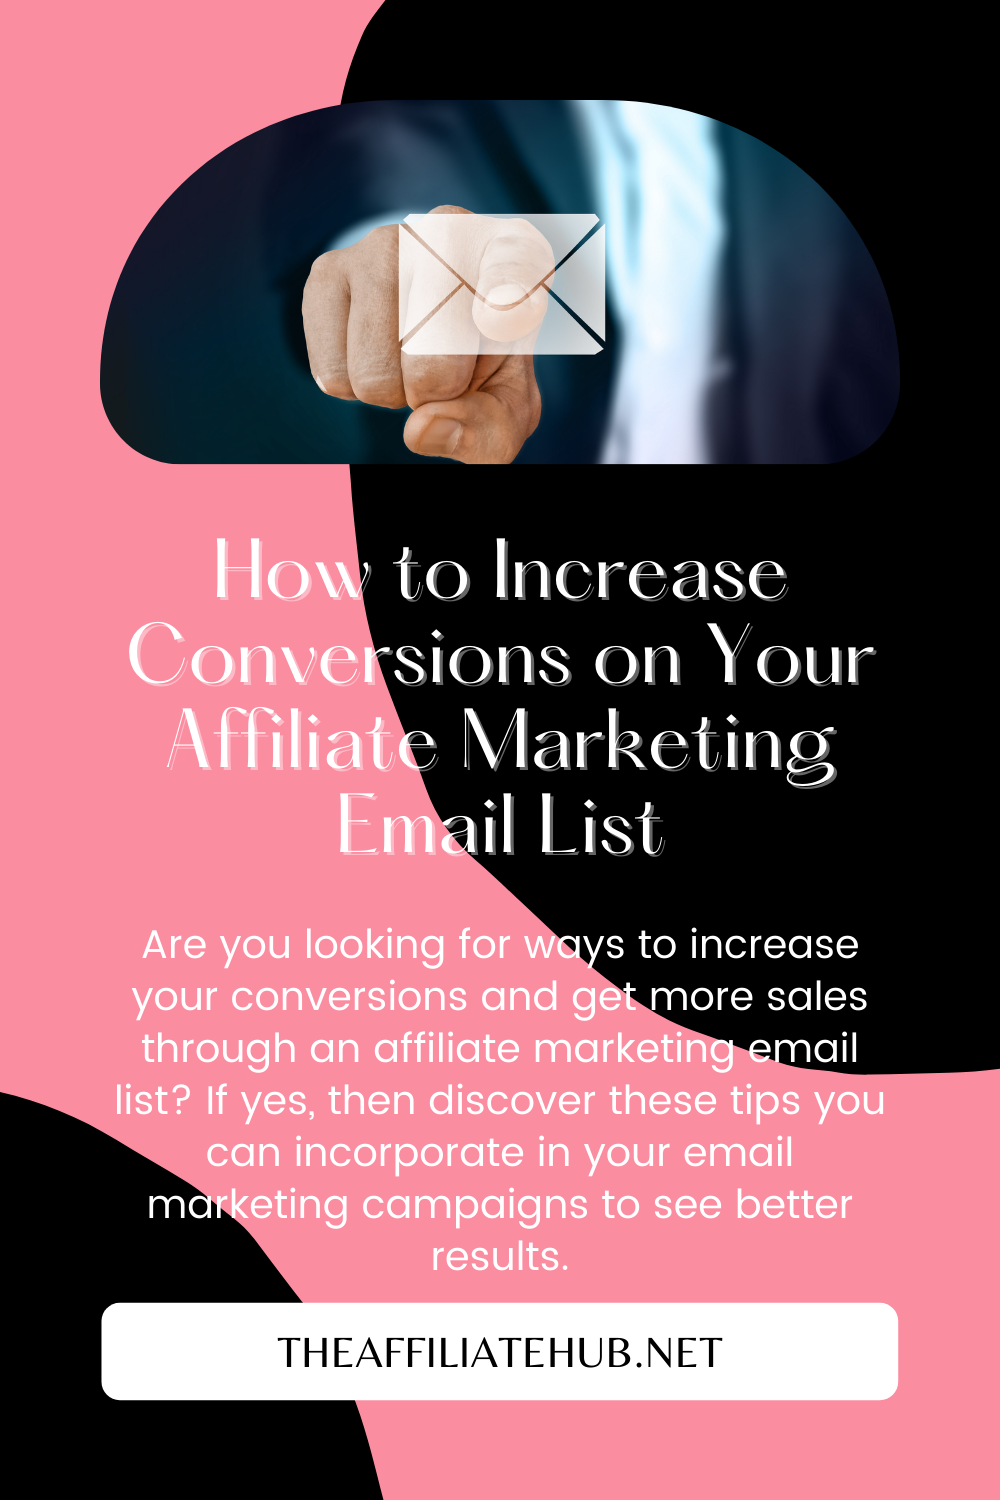 How to Increase Conversions on Your Affiliate Marketing Email List - How to Increase Conversions on Your Affiliate Marketing Email List?